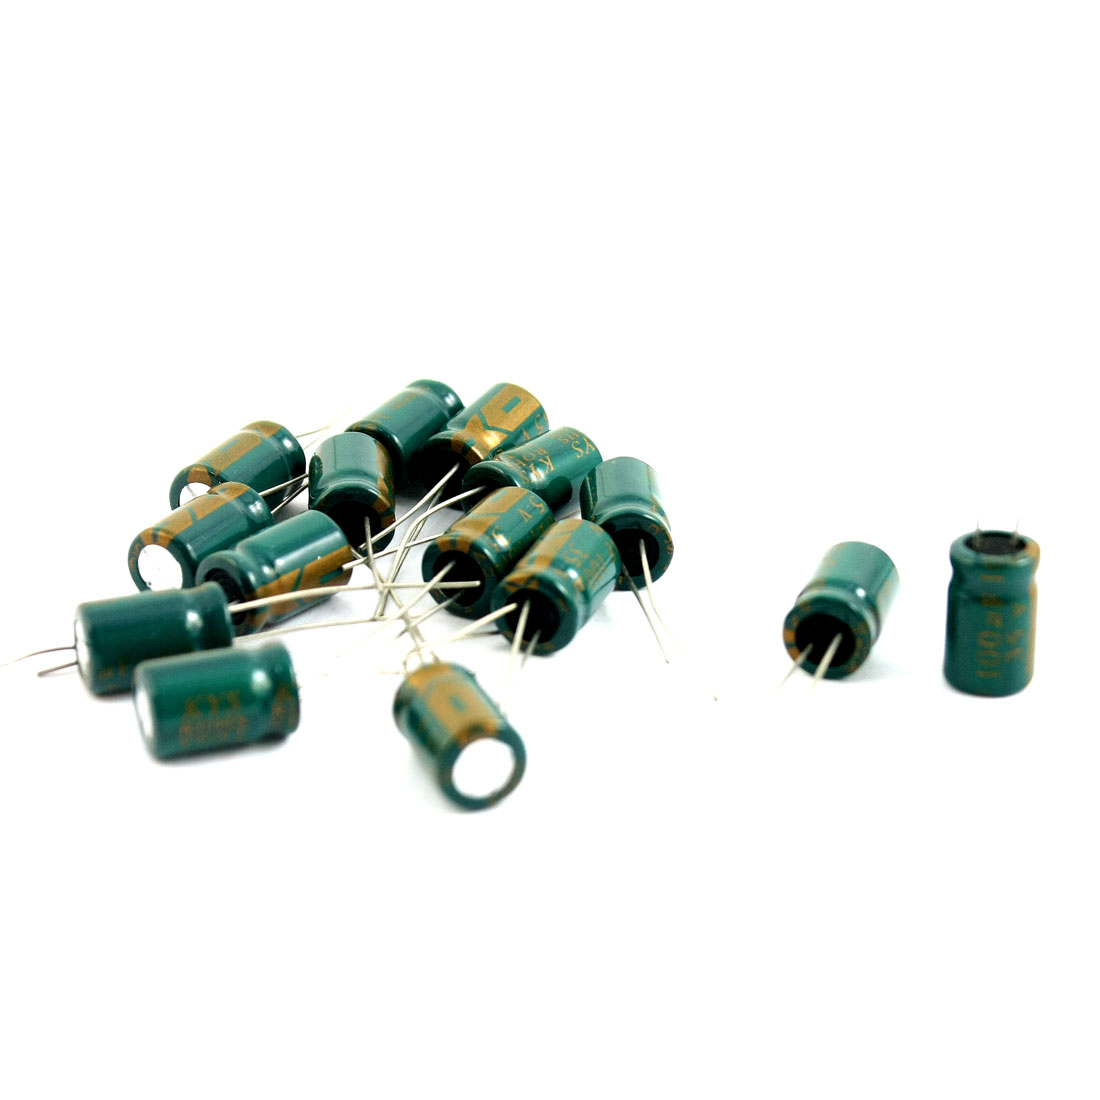 15 Pcs 100uF 35V 105C Radial Electrolytic Capacitors Green 8x12mm